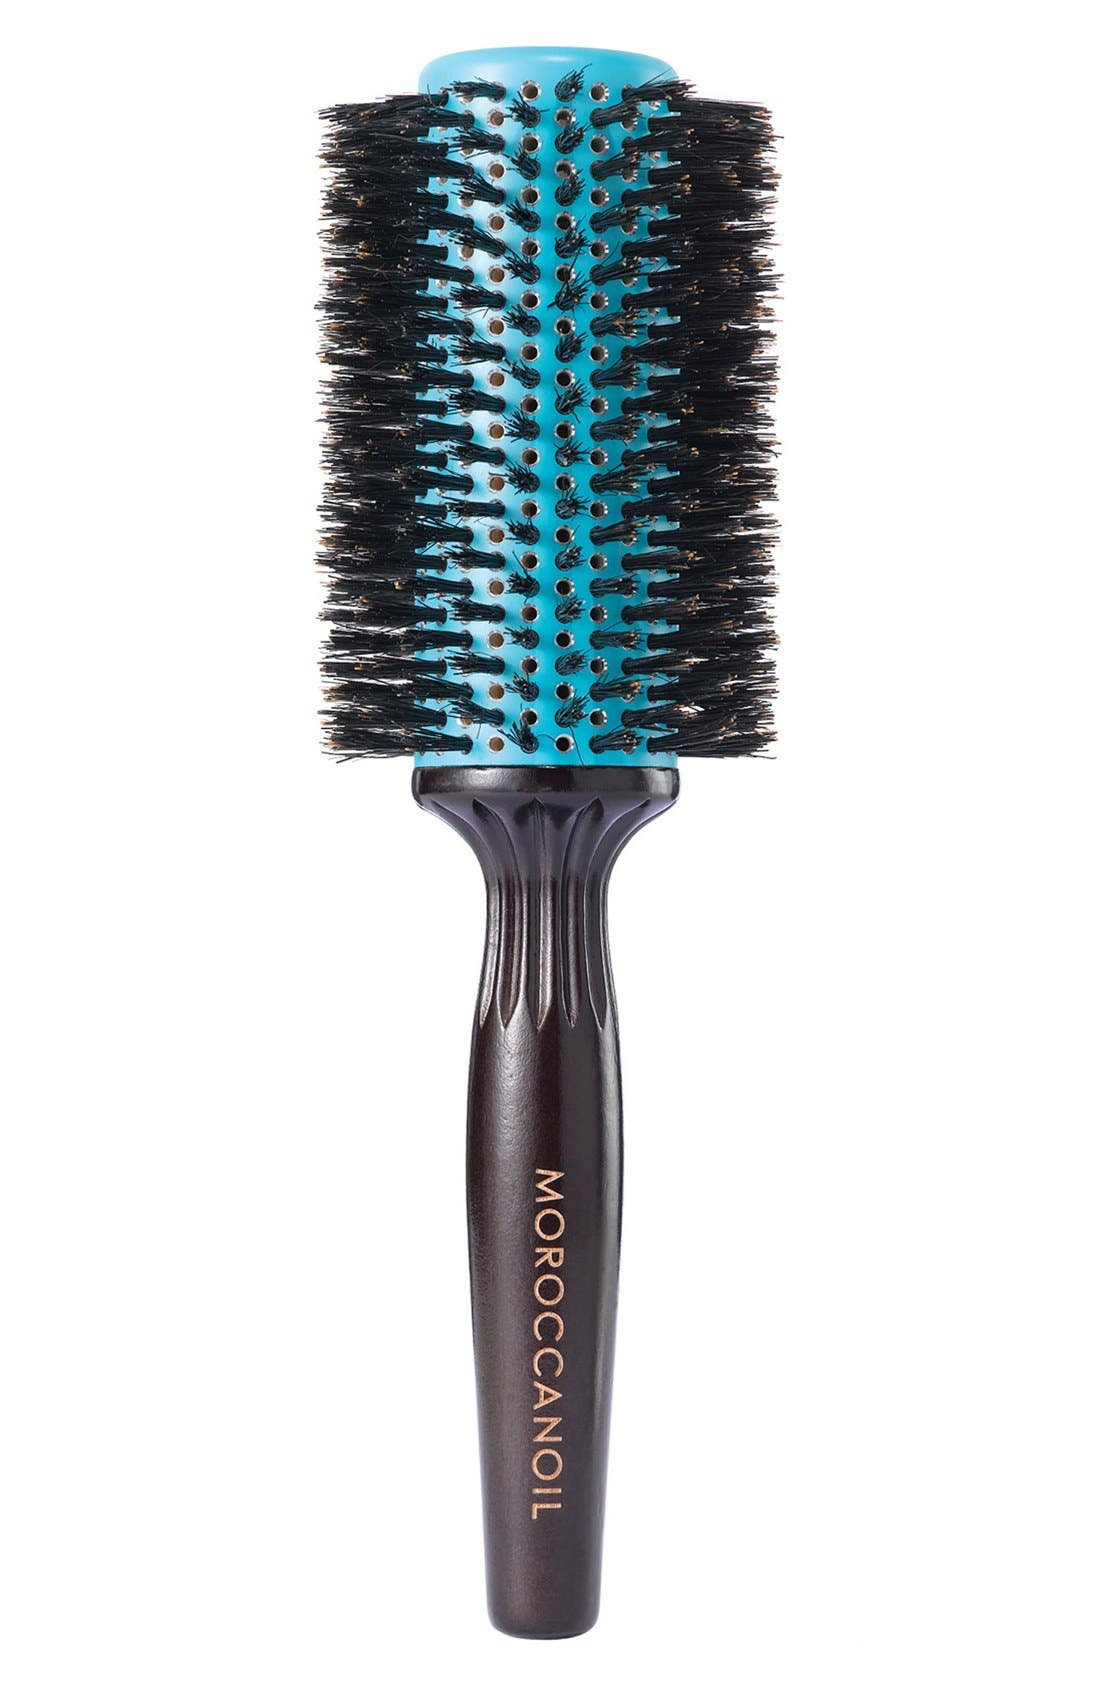 MOROCCANOIL® Ceramic Barrel Boar Bristle Round Brush for Medium to Long Length Hair